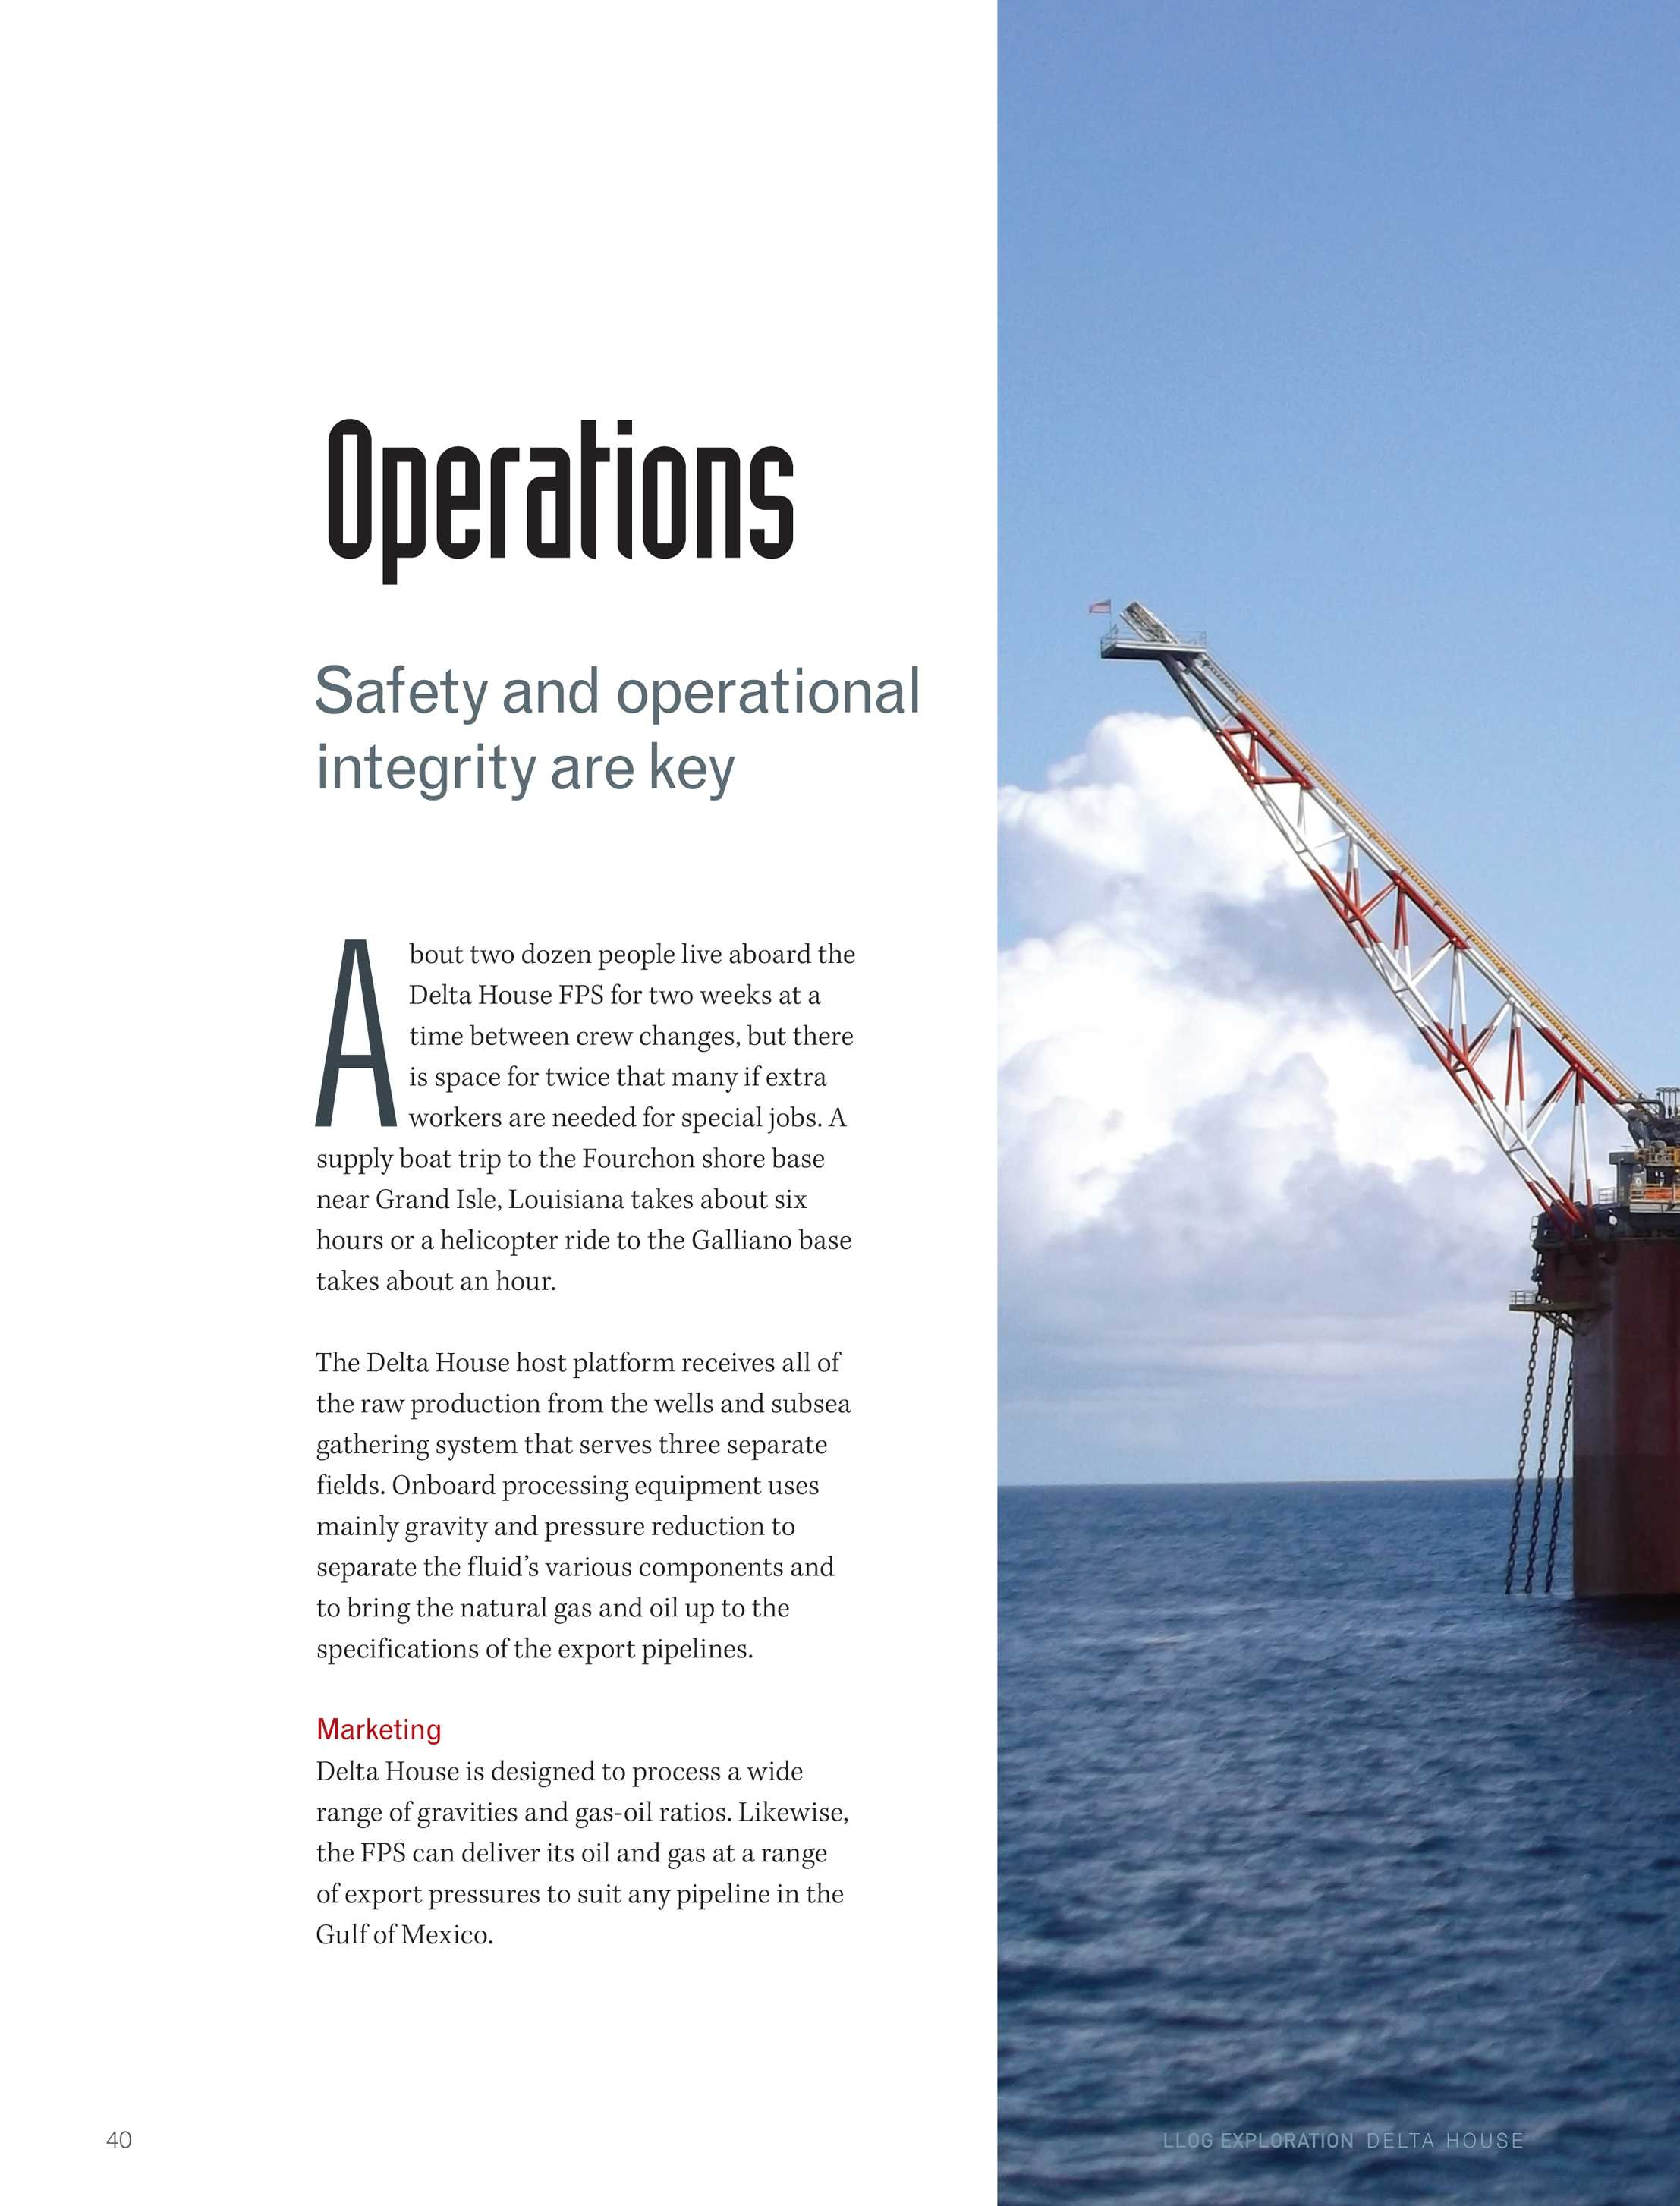 Oil & Gas Journal - February 2, 2015 - page DH40